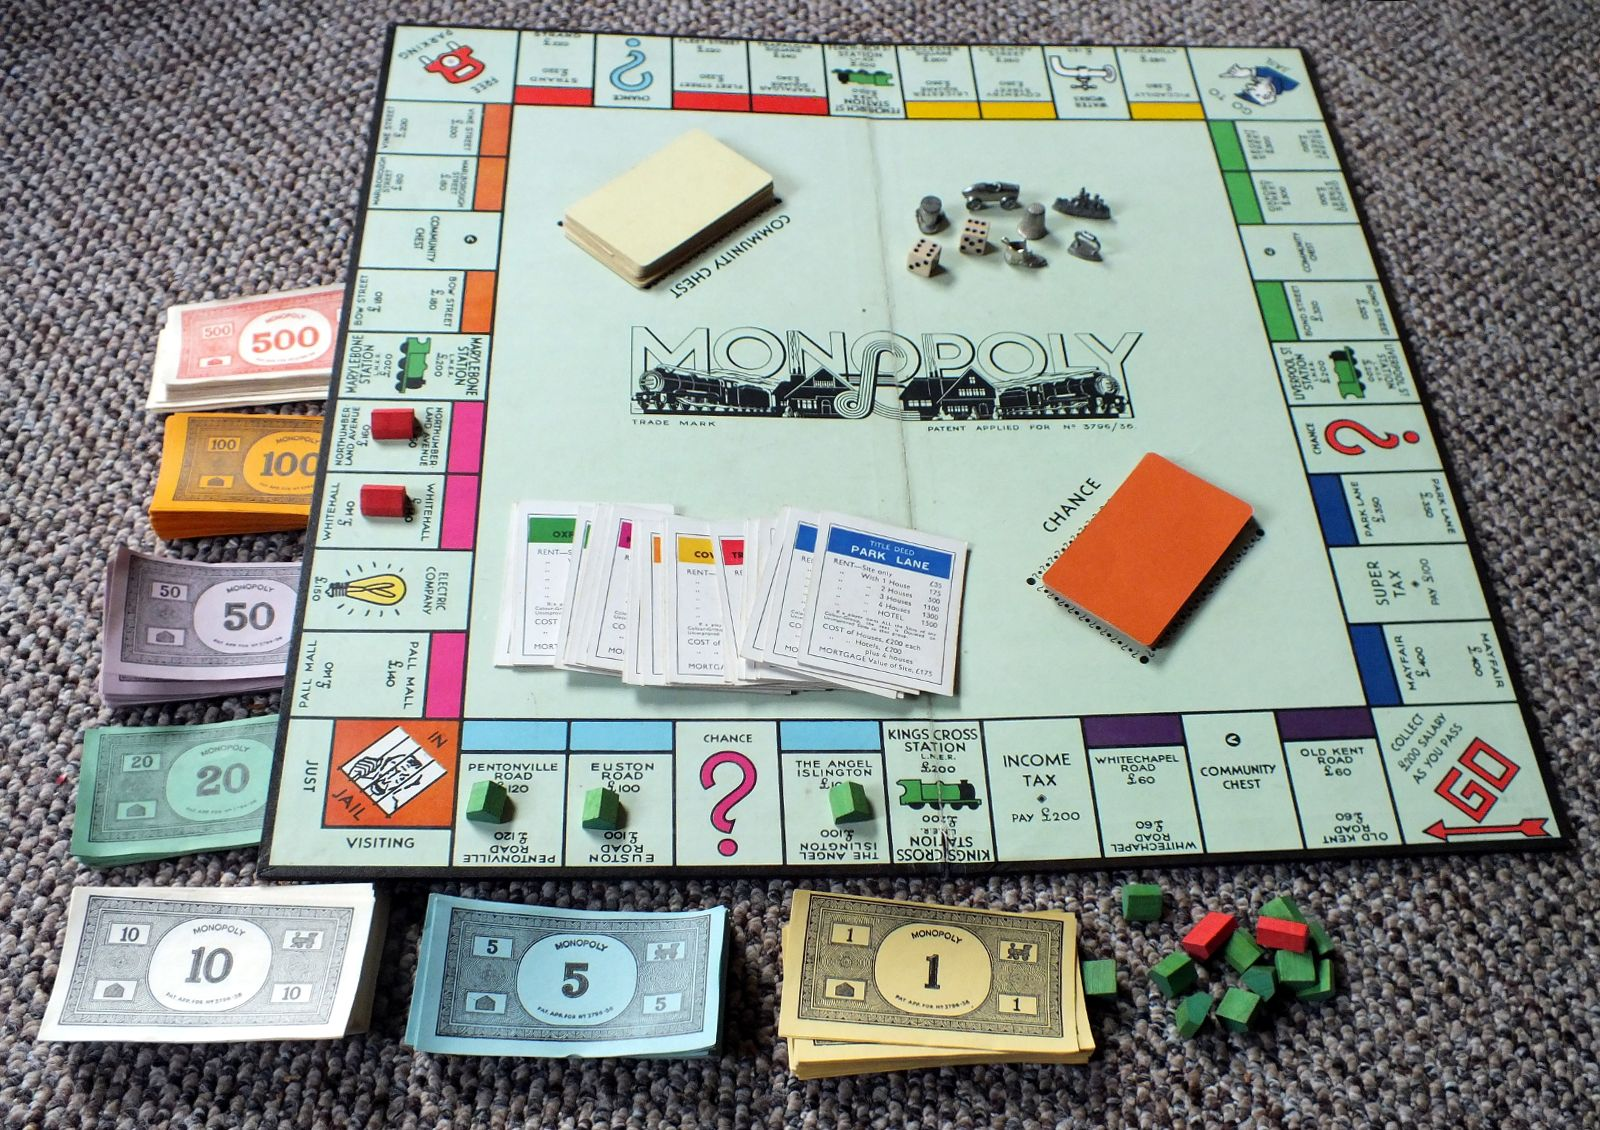 Monopoly Board Game Rules - How to play Monopoly